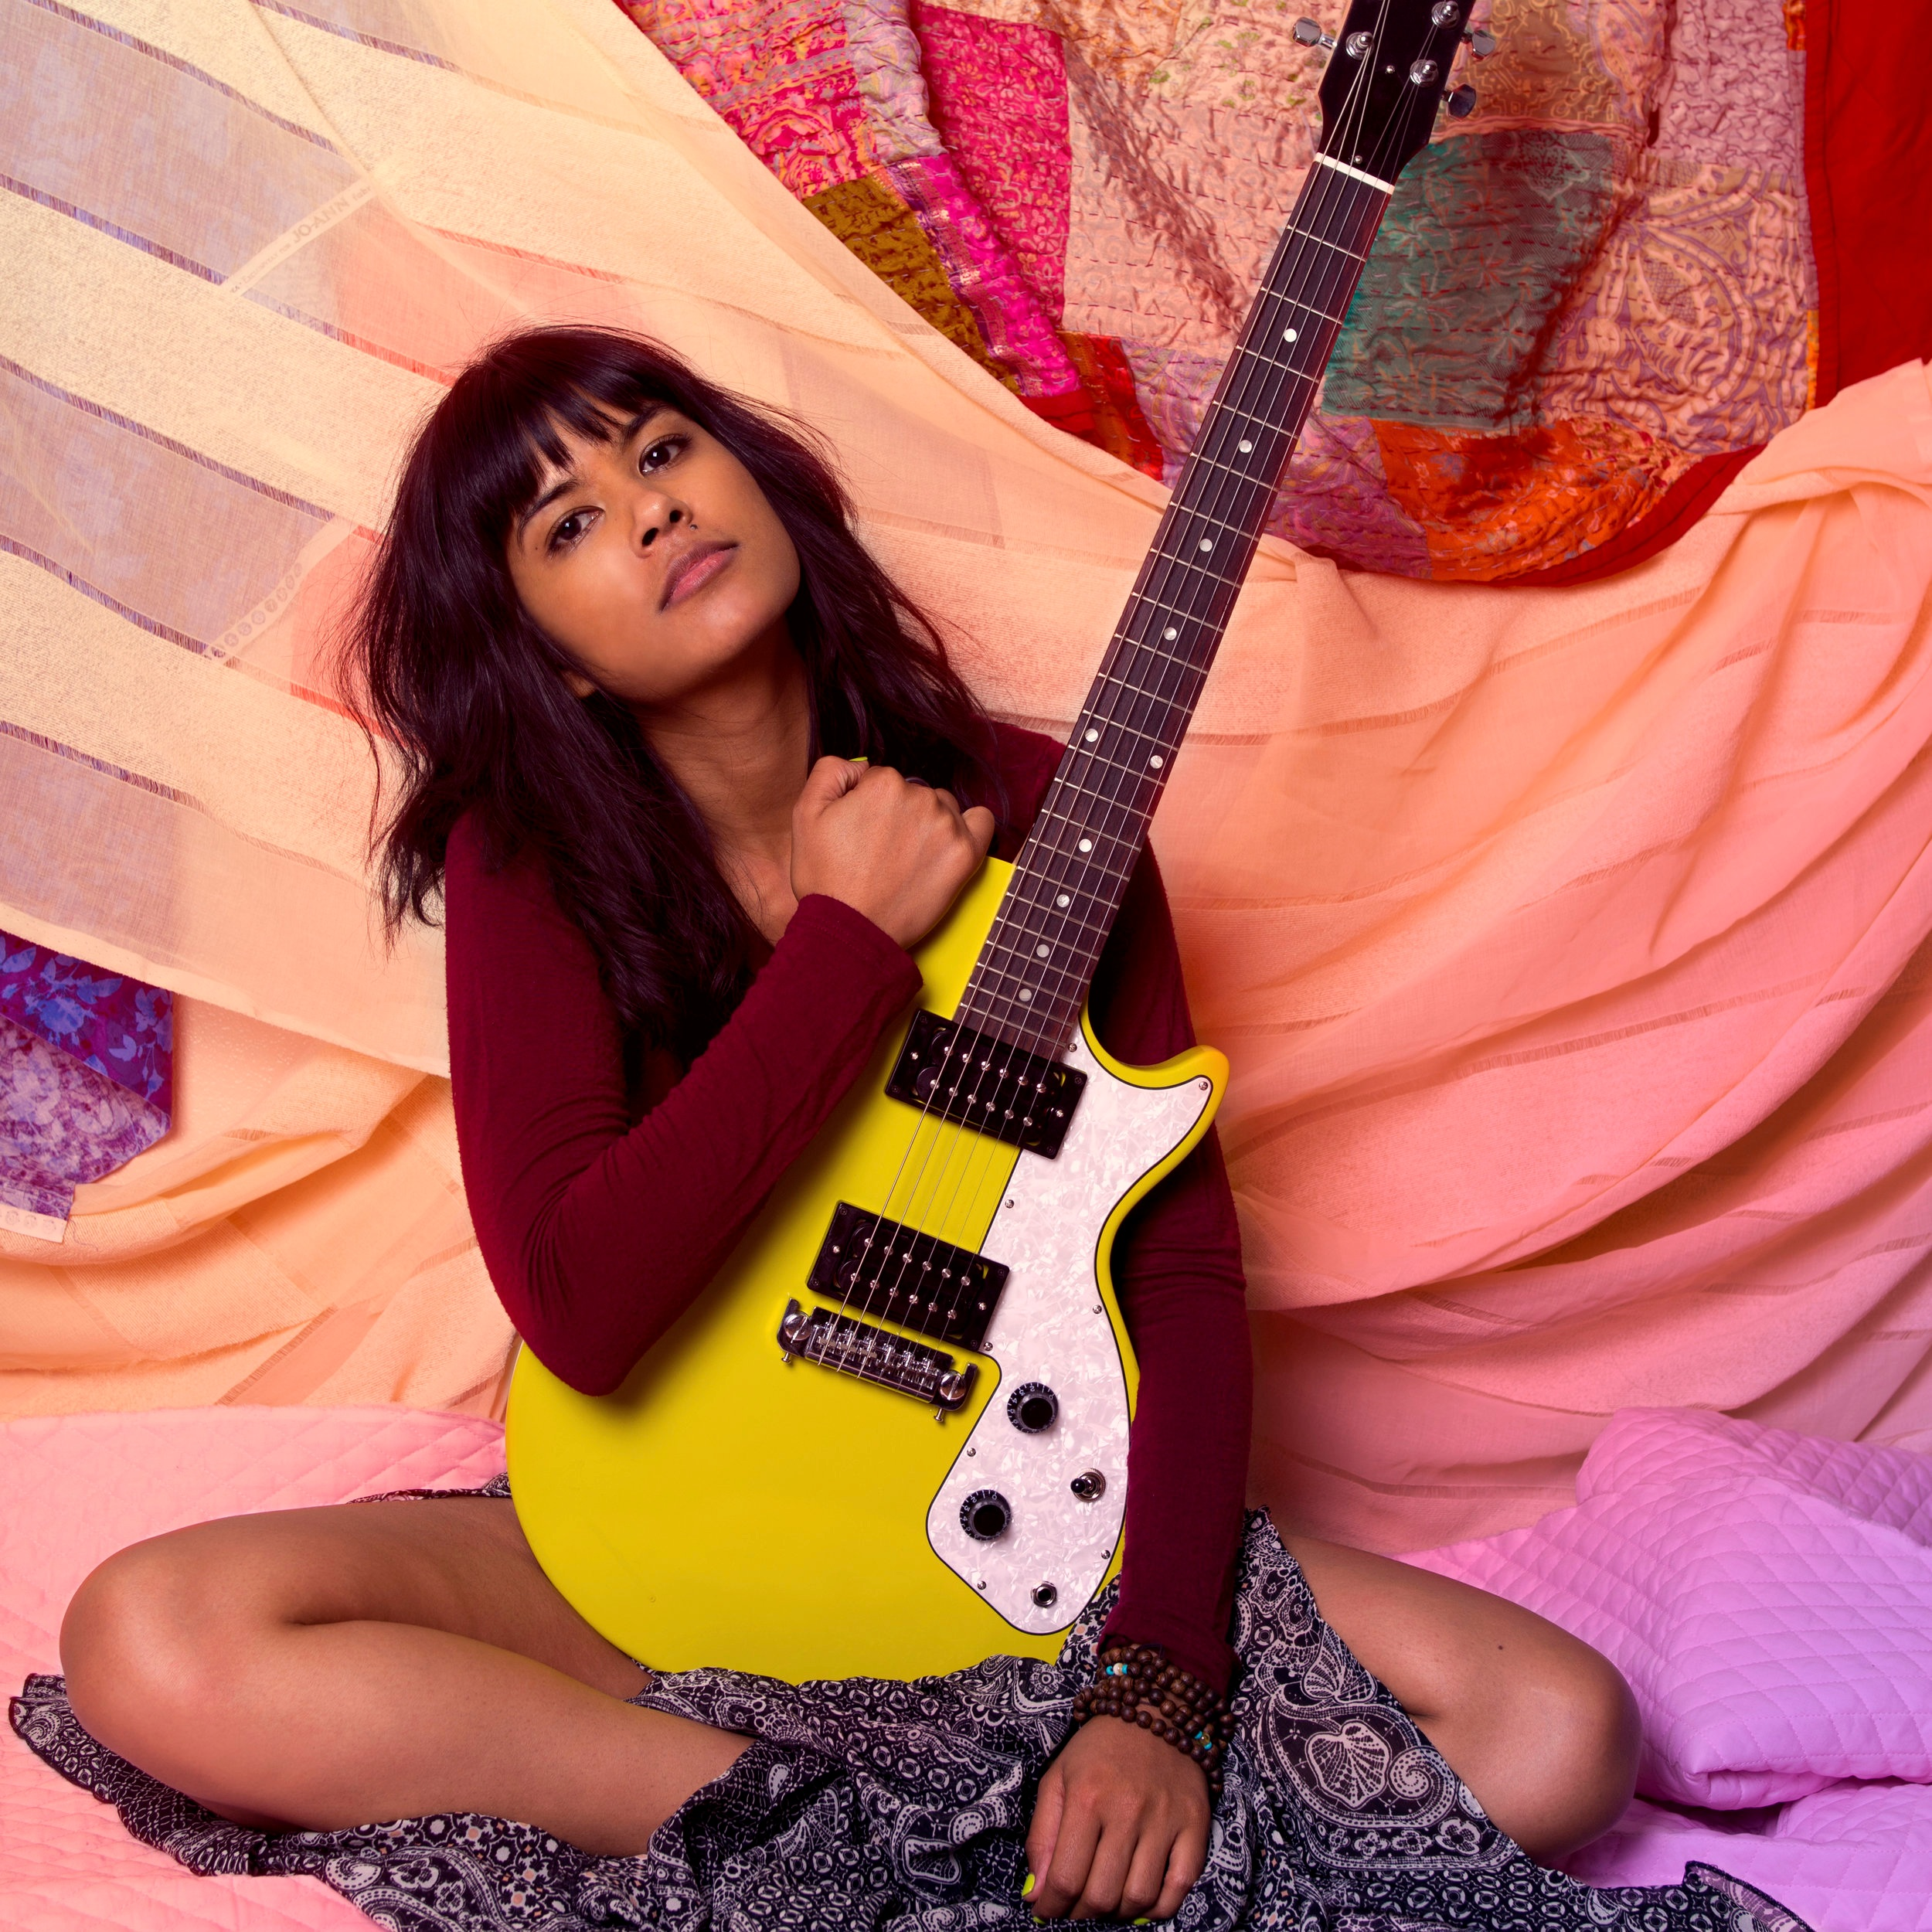 <p><strong>Sonia Barcelona</strong>Indie Pop, Singer / Songwriter<i>More →</i></p>